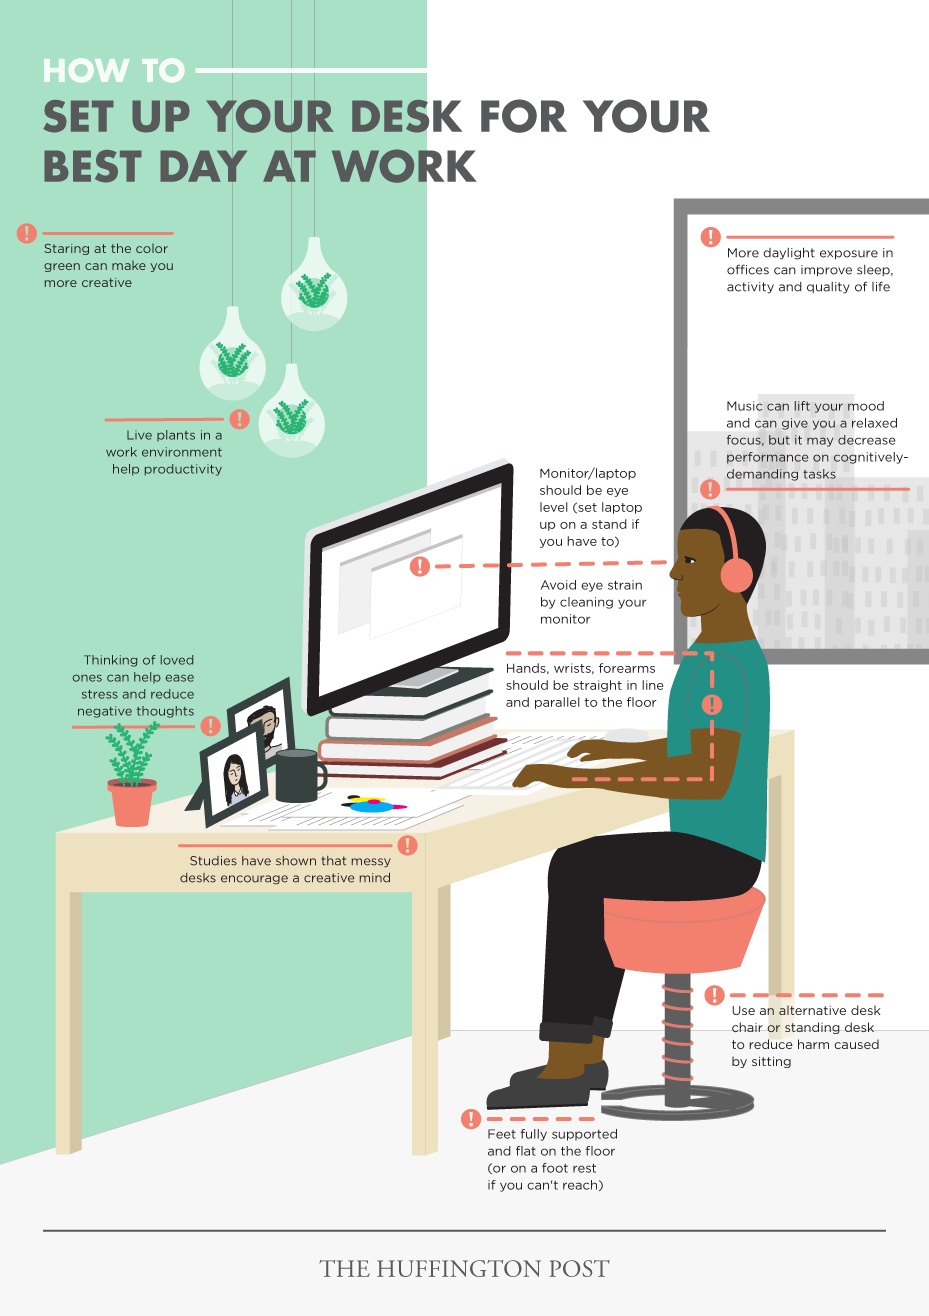 Take a look at the infographic below to see how exactly to set up your desk